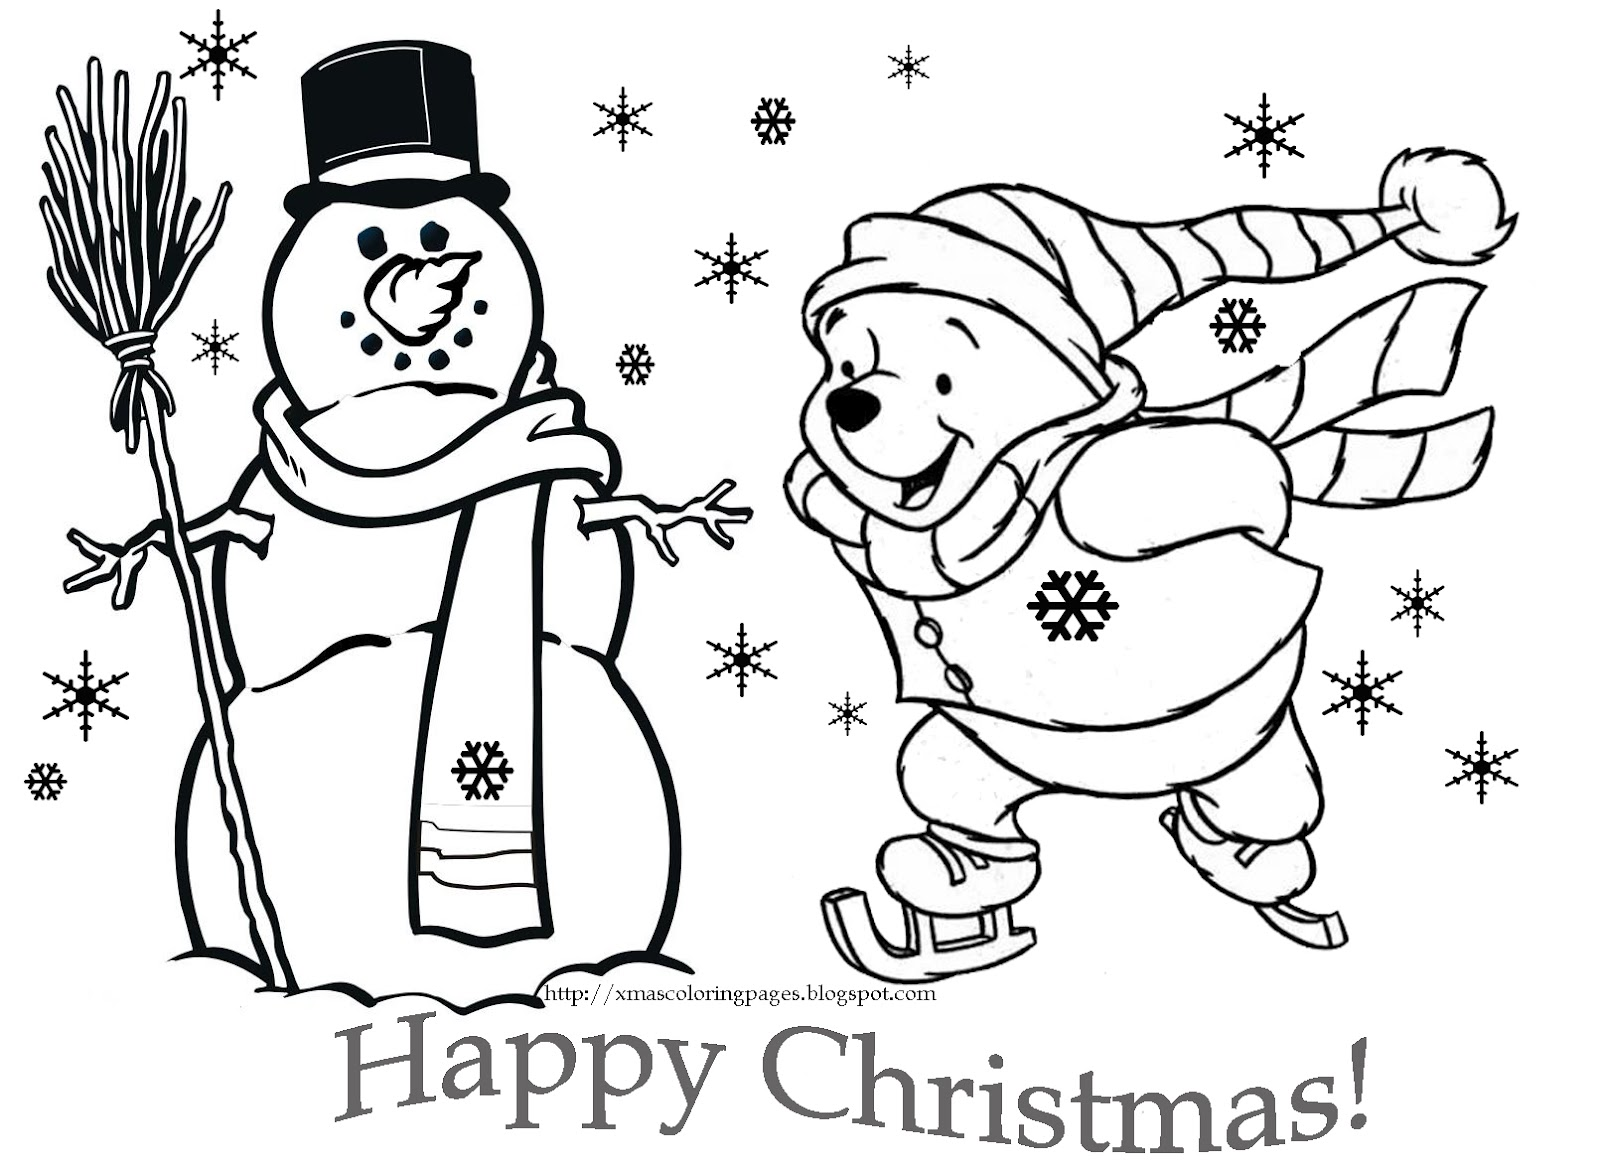 pooh coloring page.html